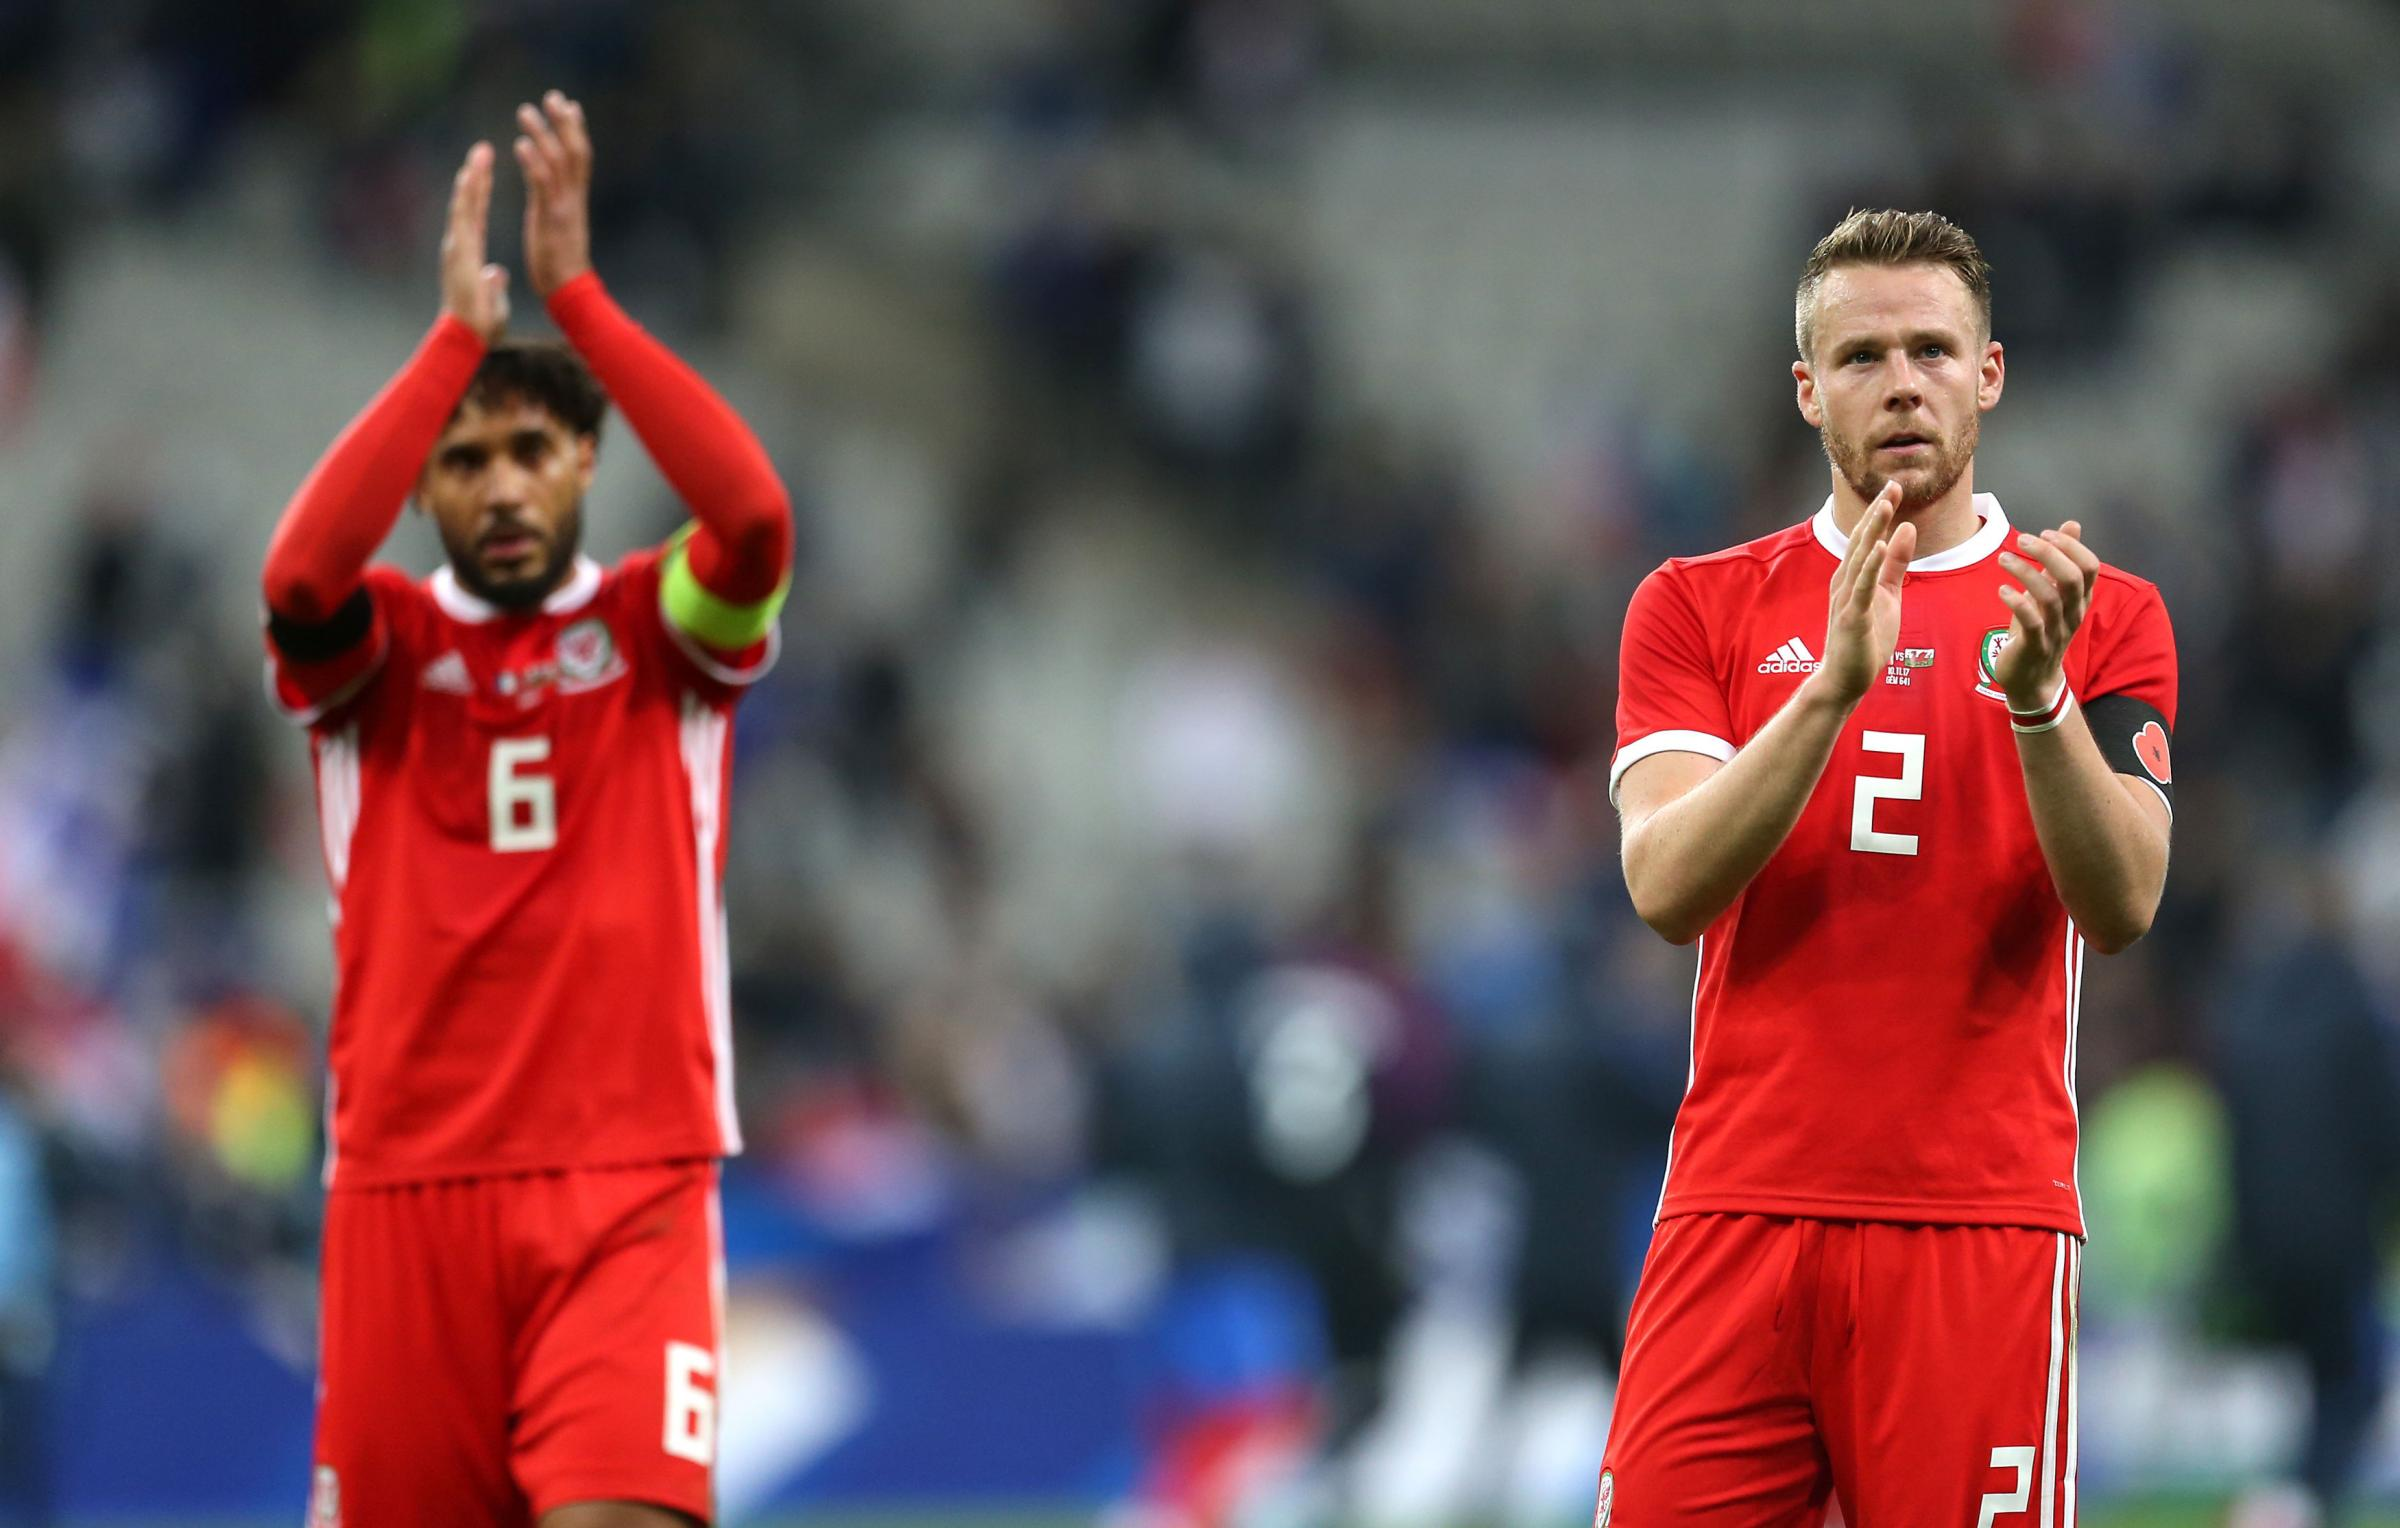 SKIPPER: Chris Gunter, right, will take the armband from regular Wales captain Ashley Williams, left, for tomorrow's friendly clash with Panama